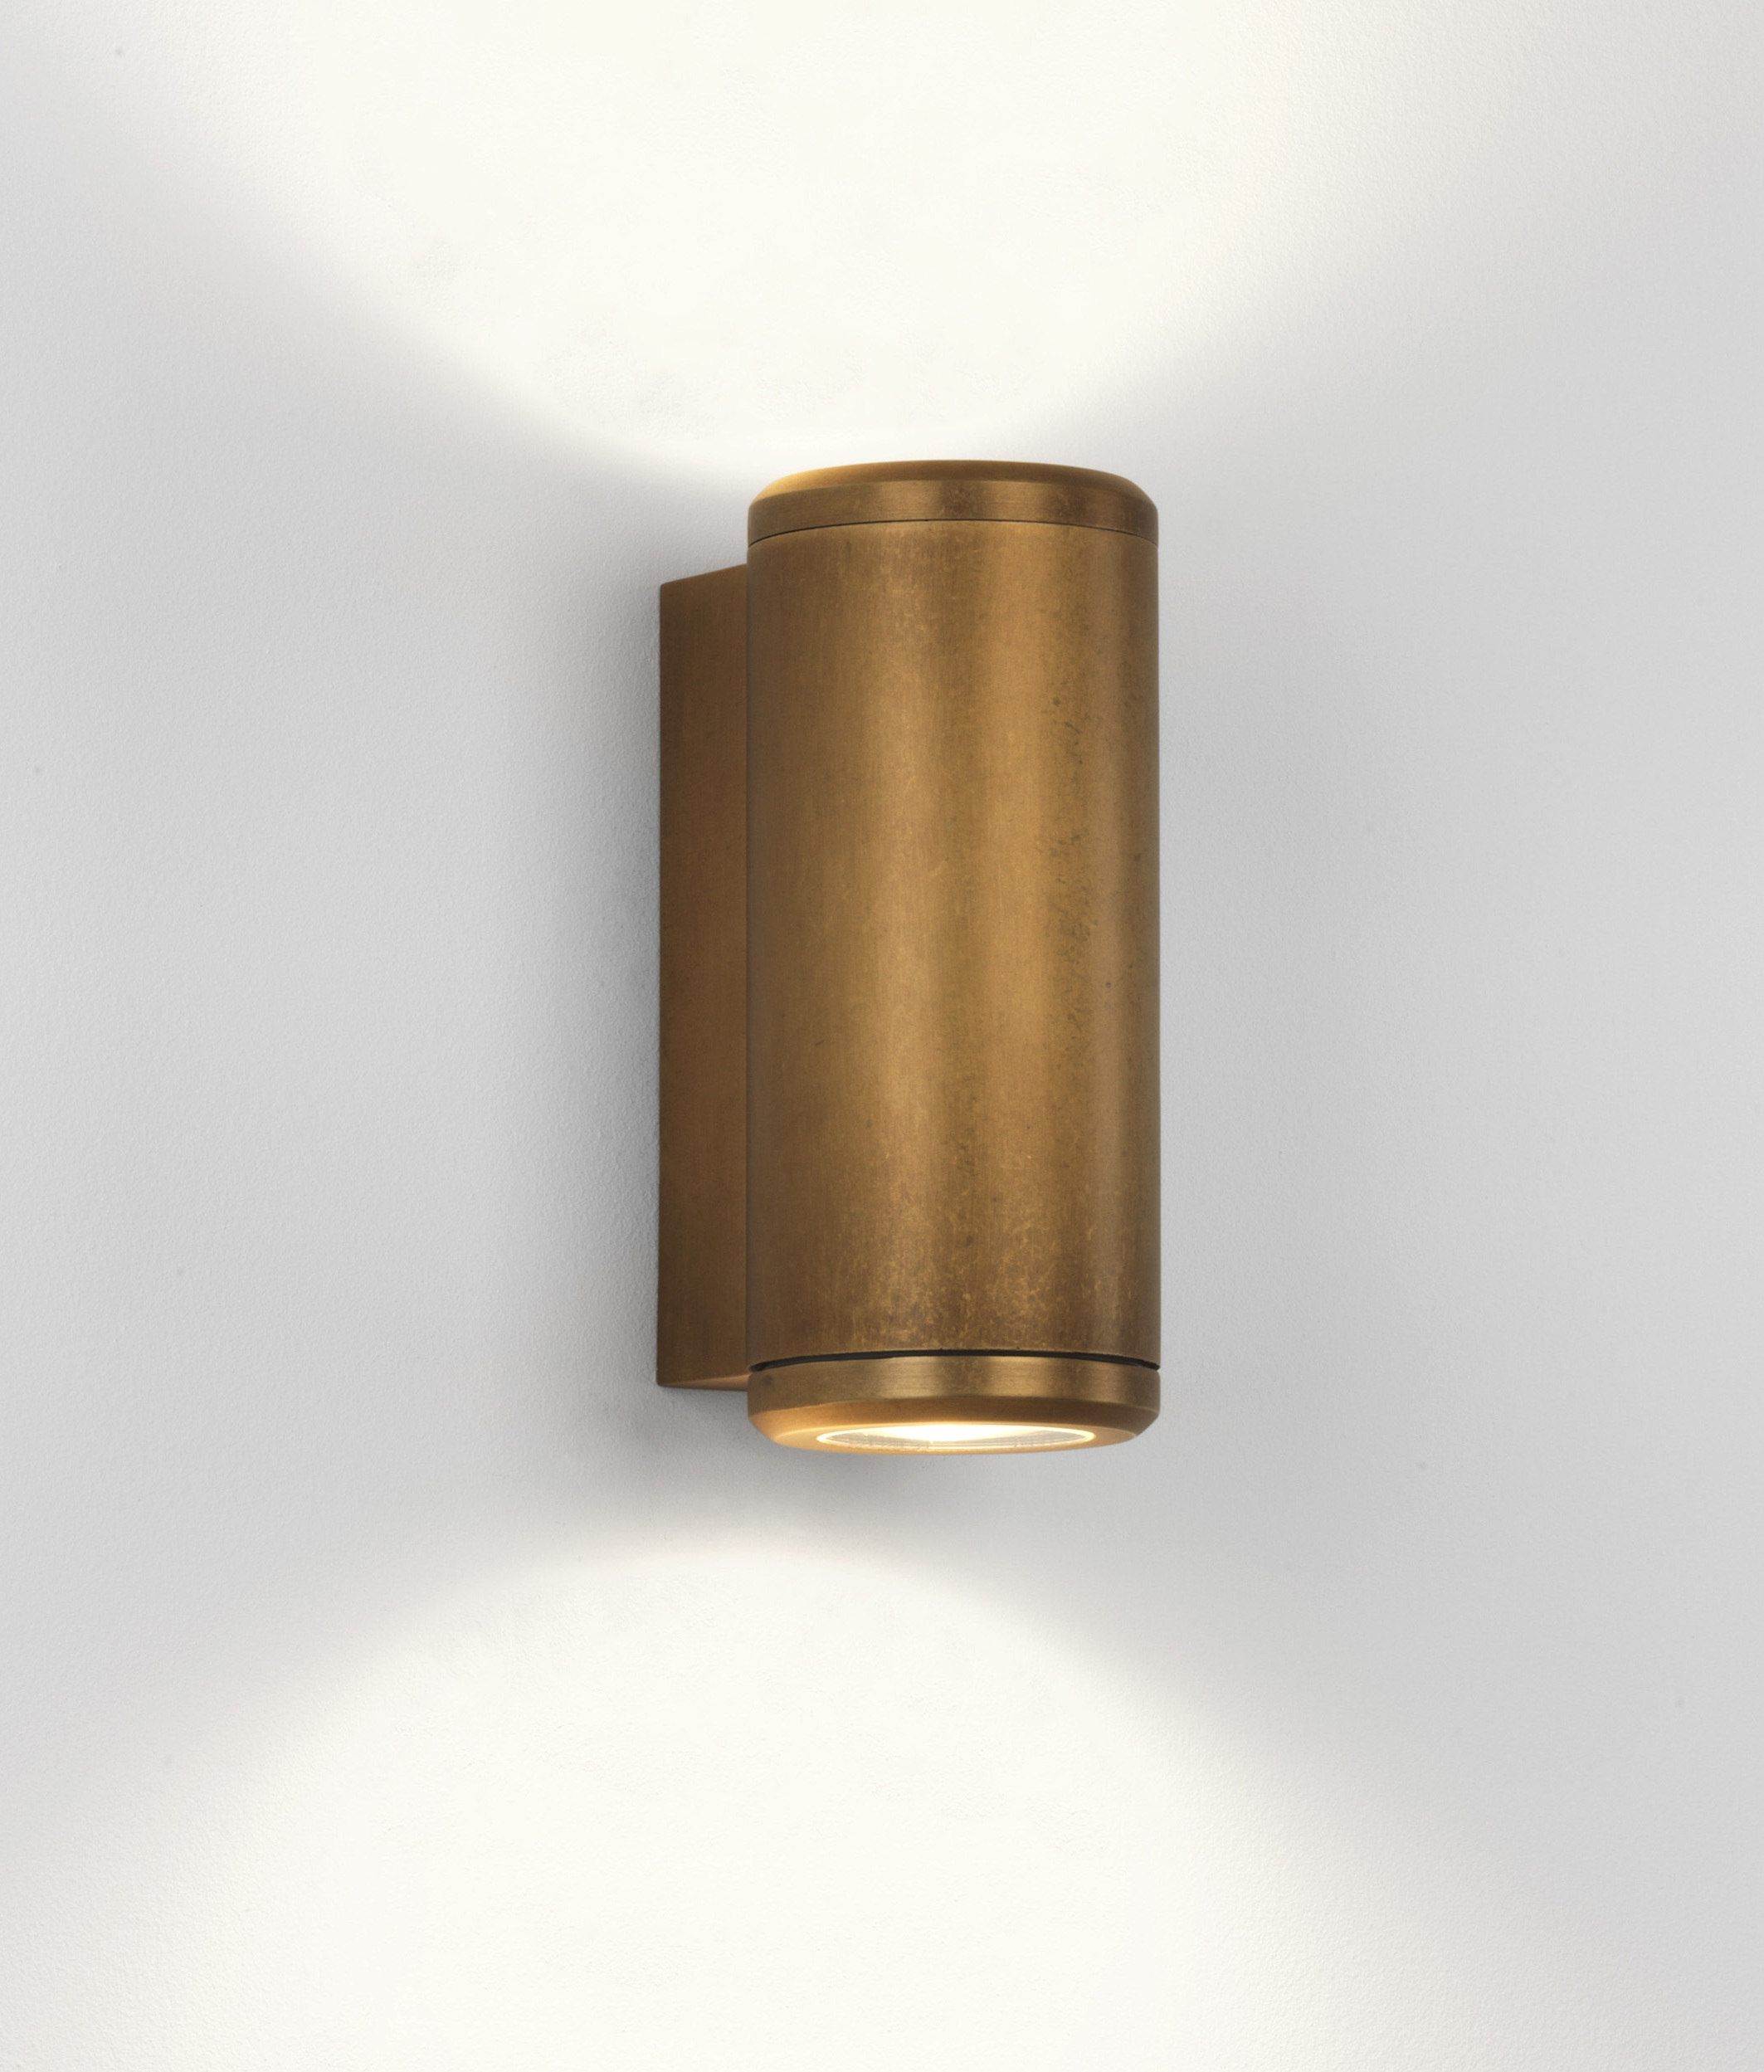 Black Up And Down Led Wall Lights : Up & Down Coastal Wall Light in Antique Brass Finish